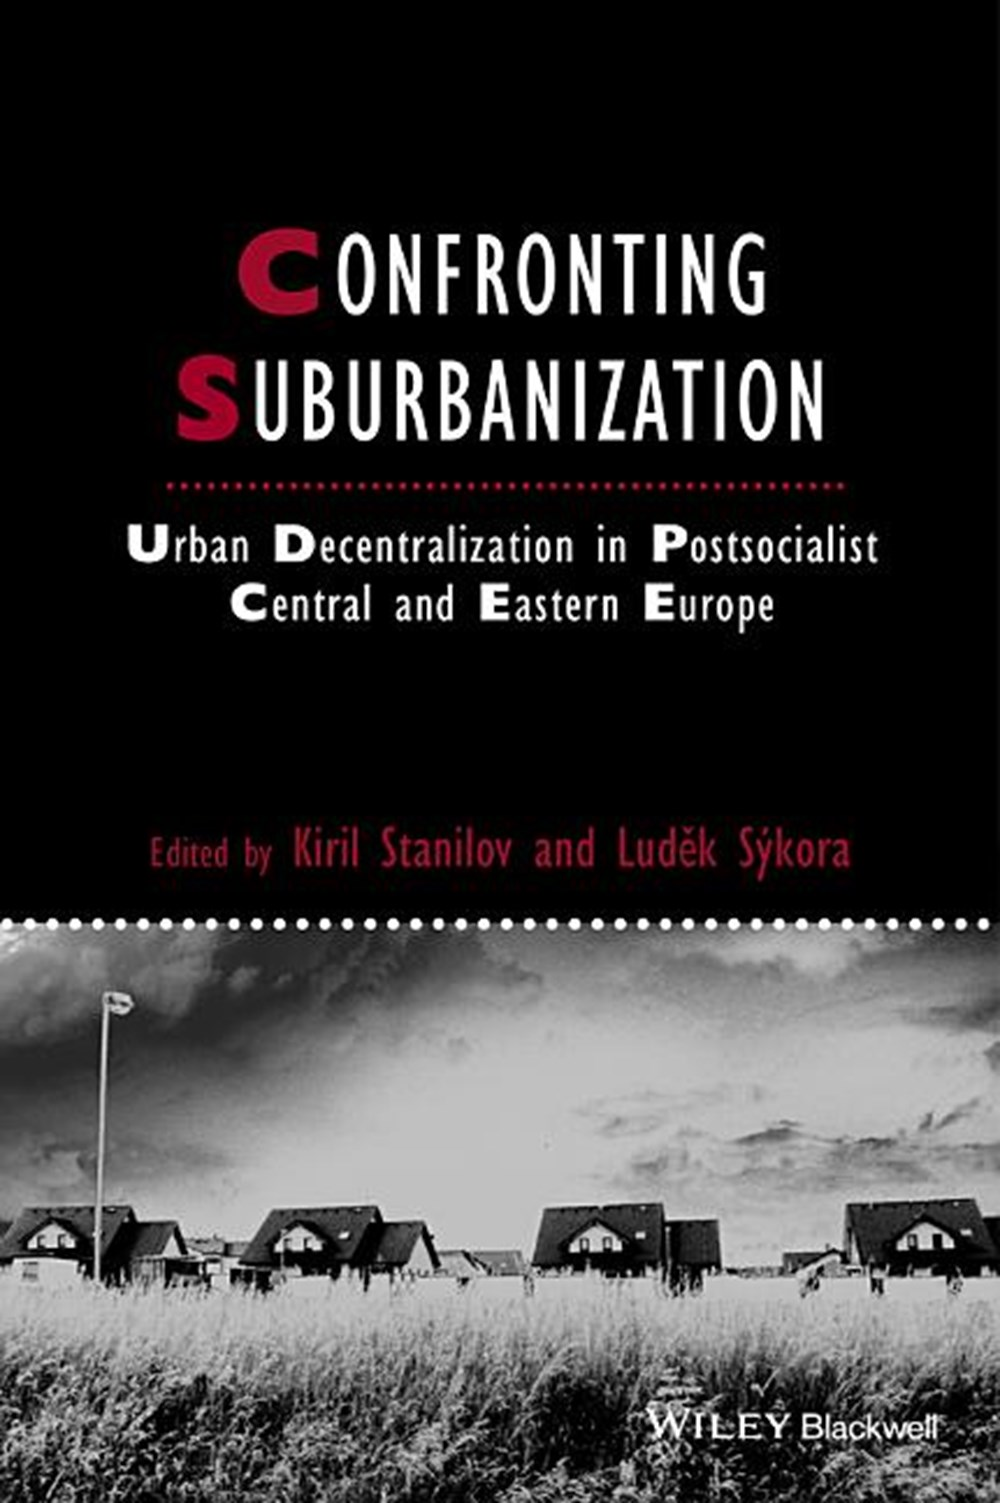 Confronting Suburbanization Urban Decentralization in Postsocialist Central and Eastern Europe